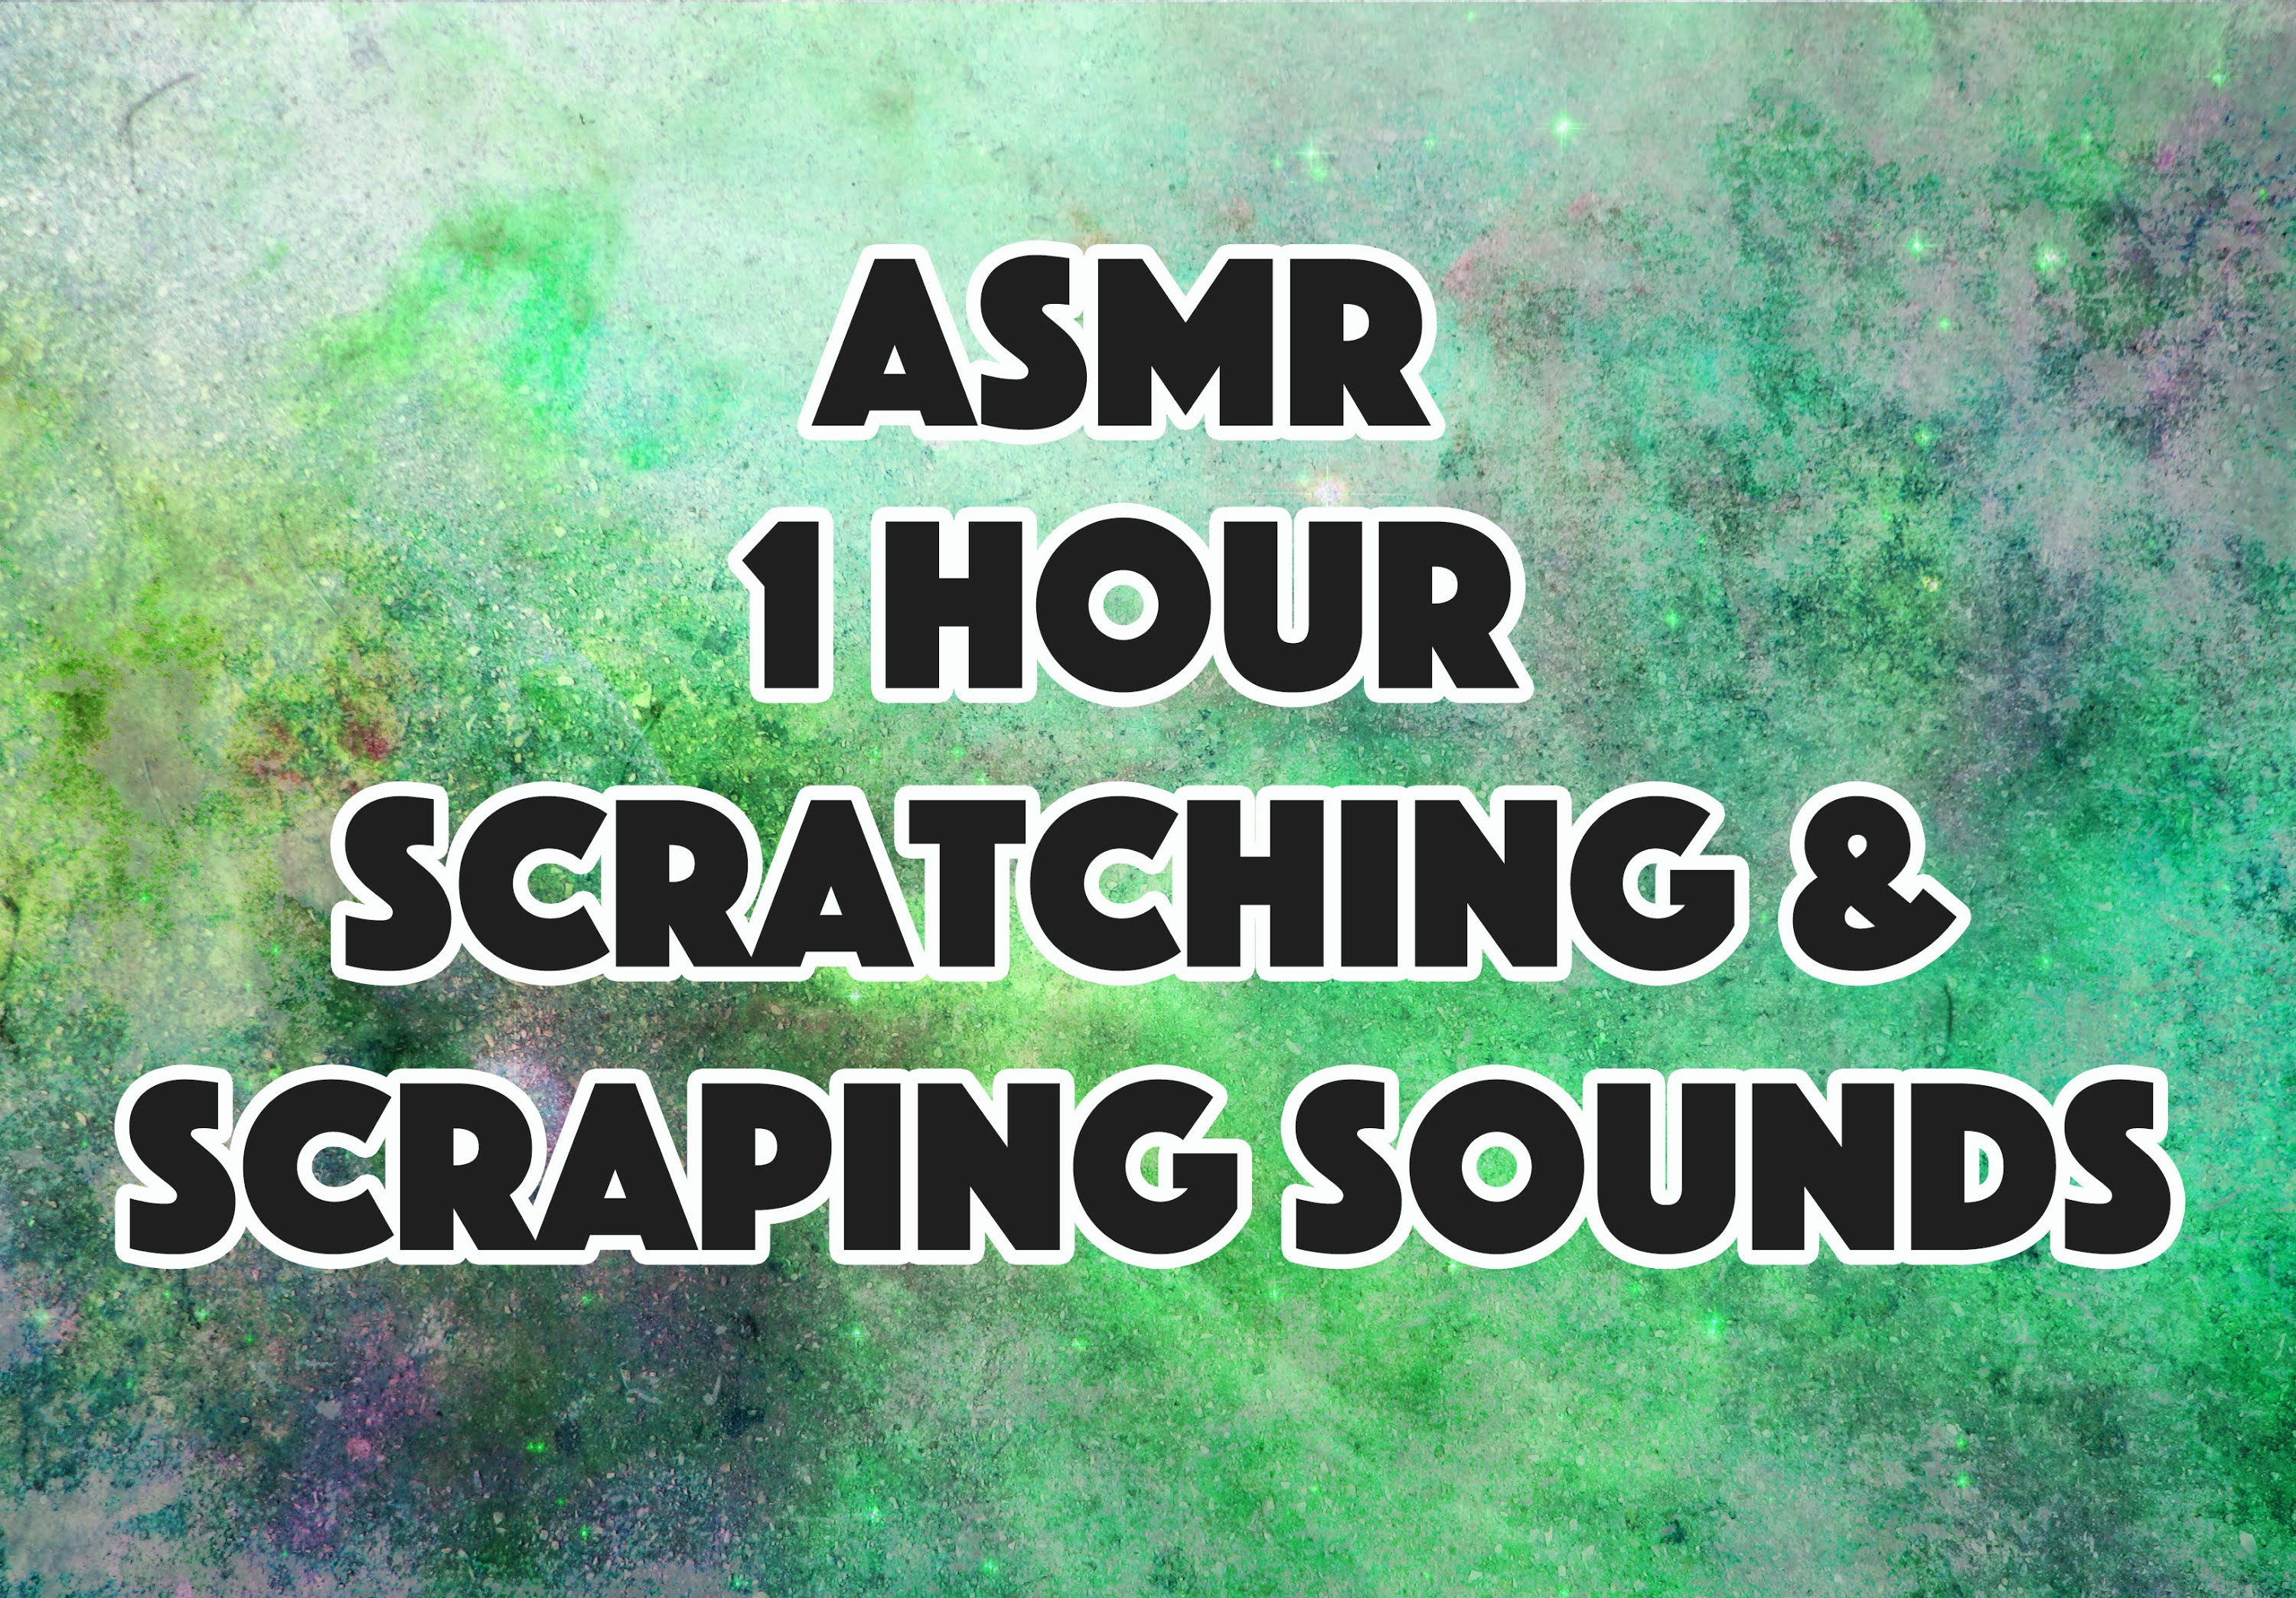 ASMR: One Hour of Scratching and Scraping Sounds